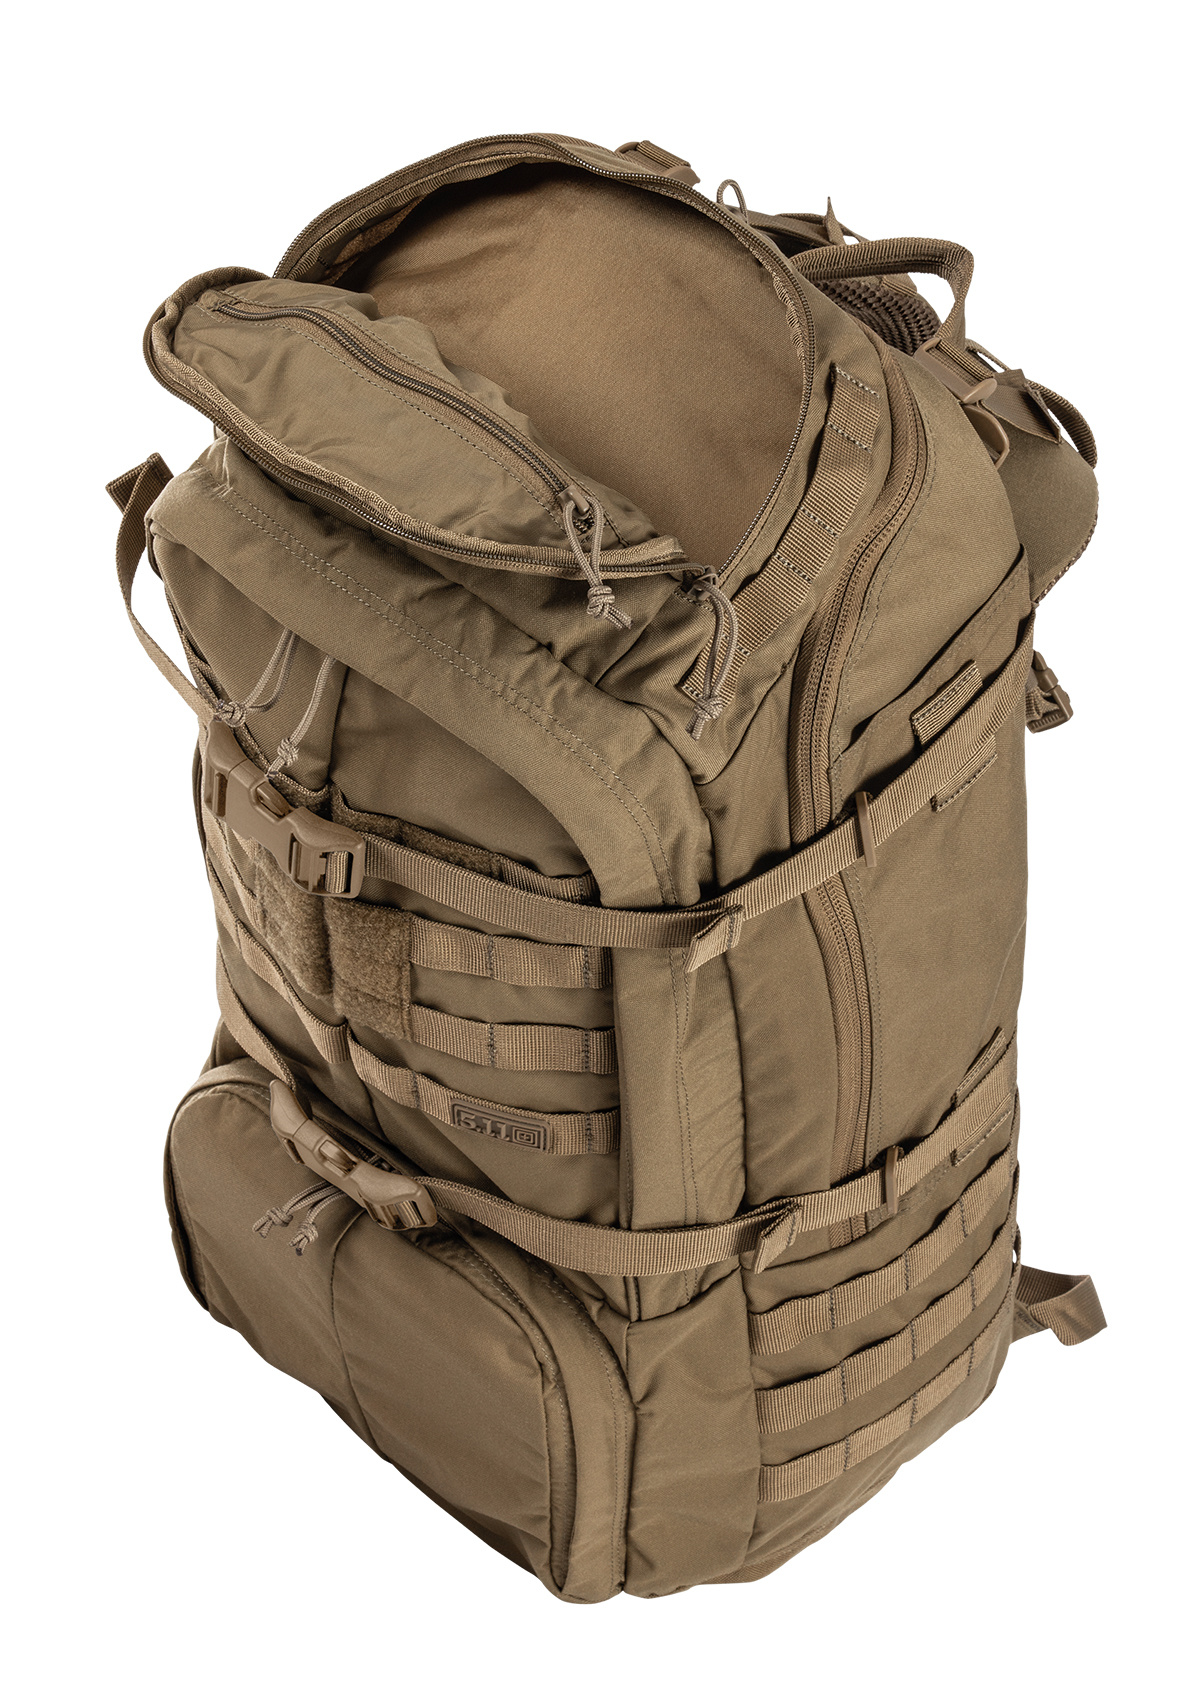 5.11-Tactical RUSH100 RUGZAK 60 Liter